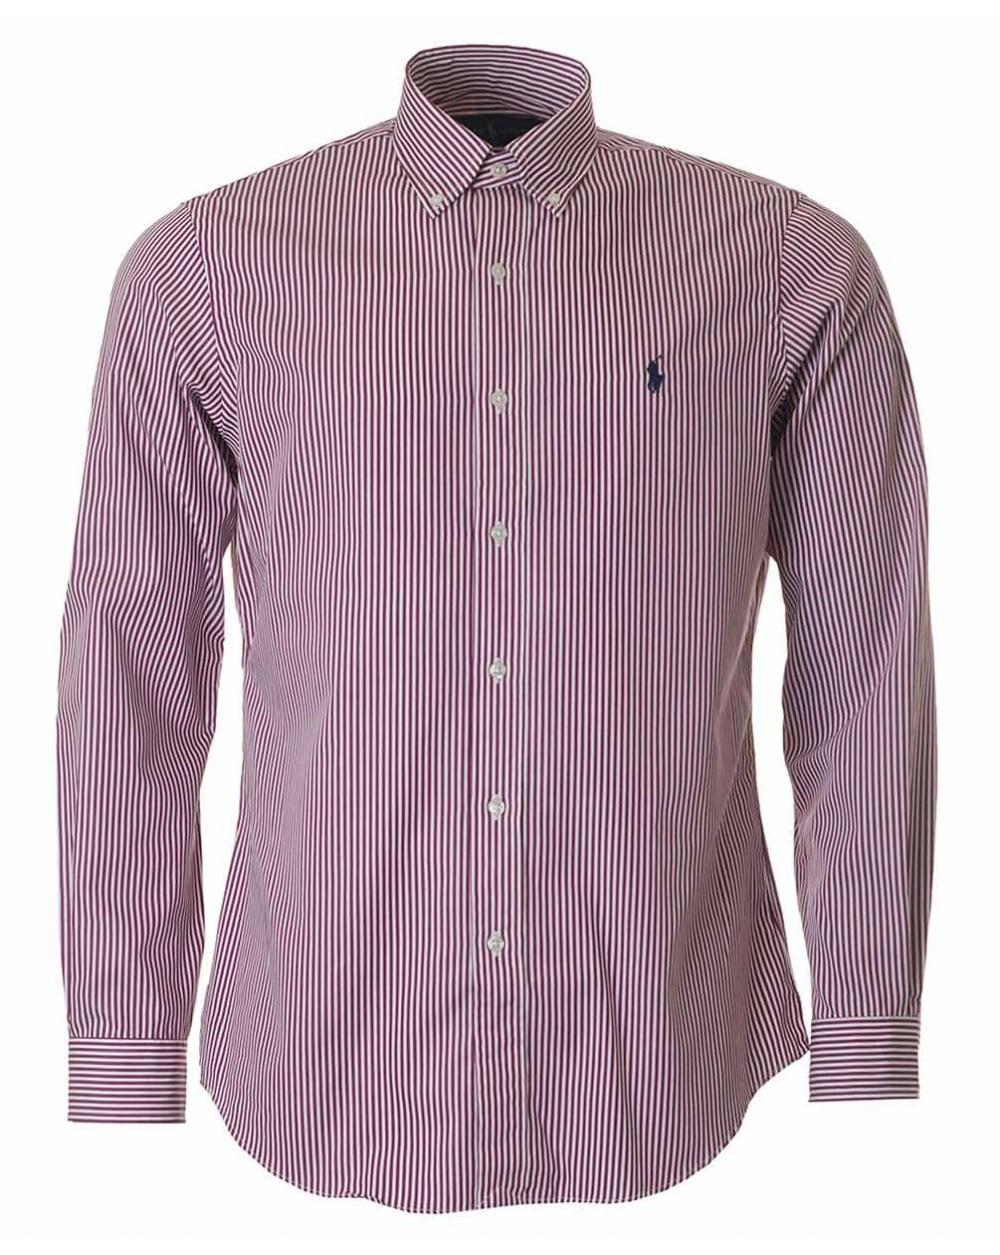 Lyst polo ralph lauren custom fit striped button down for Custom pattern button down shirts